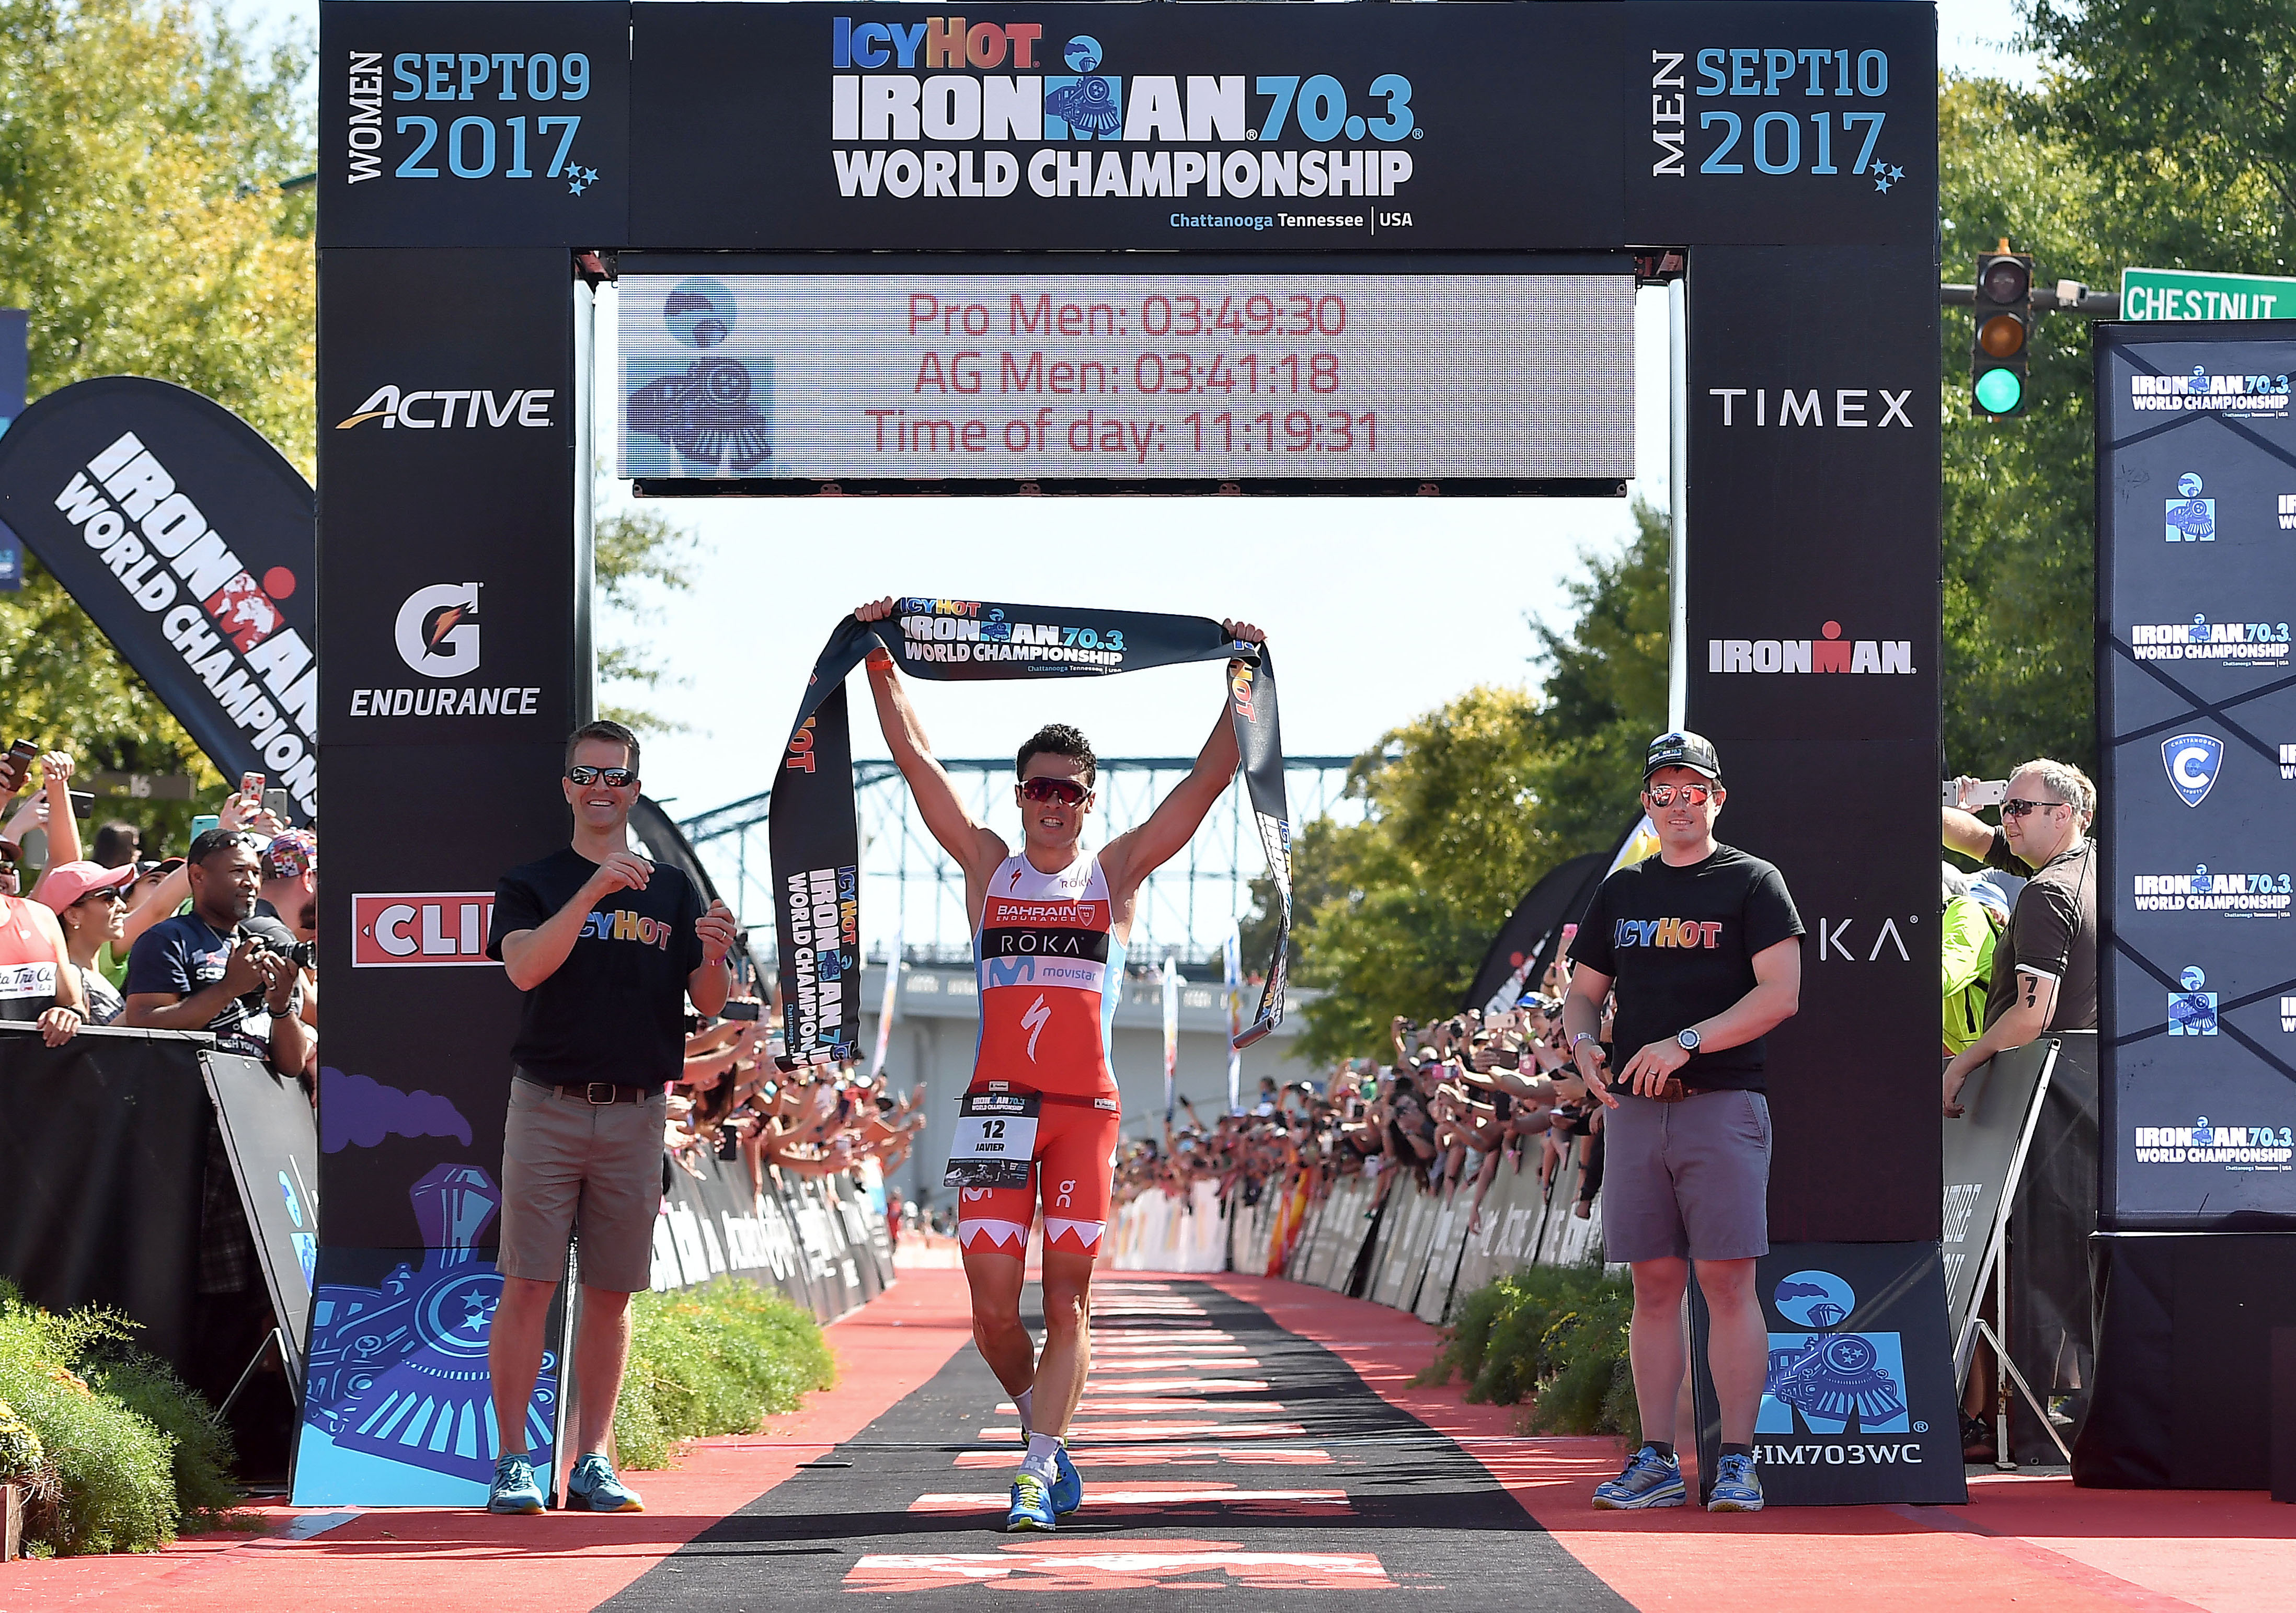 Javier Gomez of Spain crosses the finish line for a 1st place finish during the the Men's IRONMAN 70.3 St. World Championships on September 10, 2017 in Chattanooga, Tennessee. (Photo by Donald Miralle for Ironman)